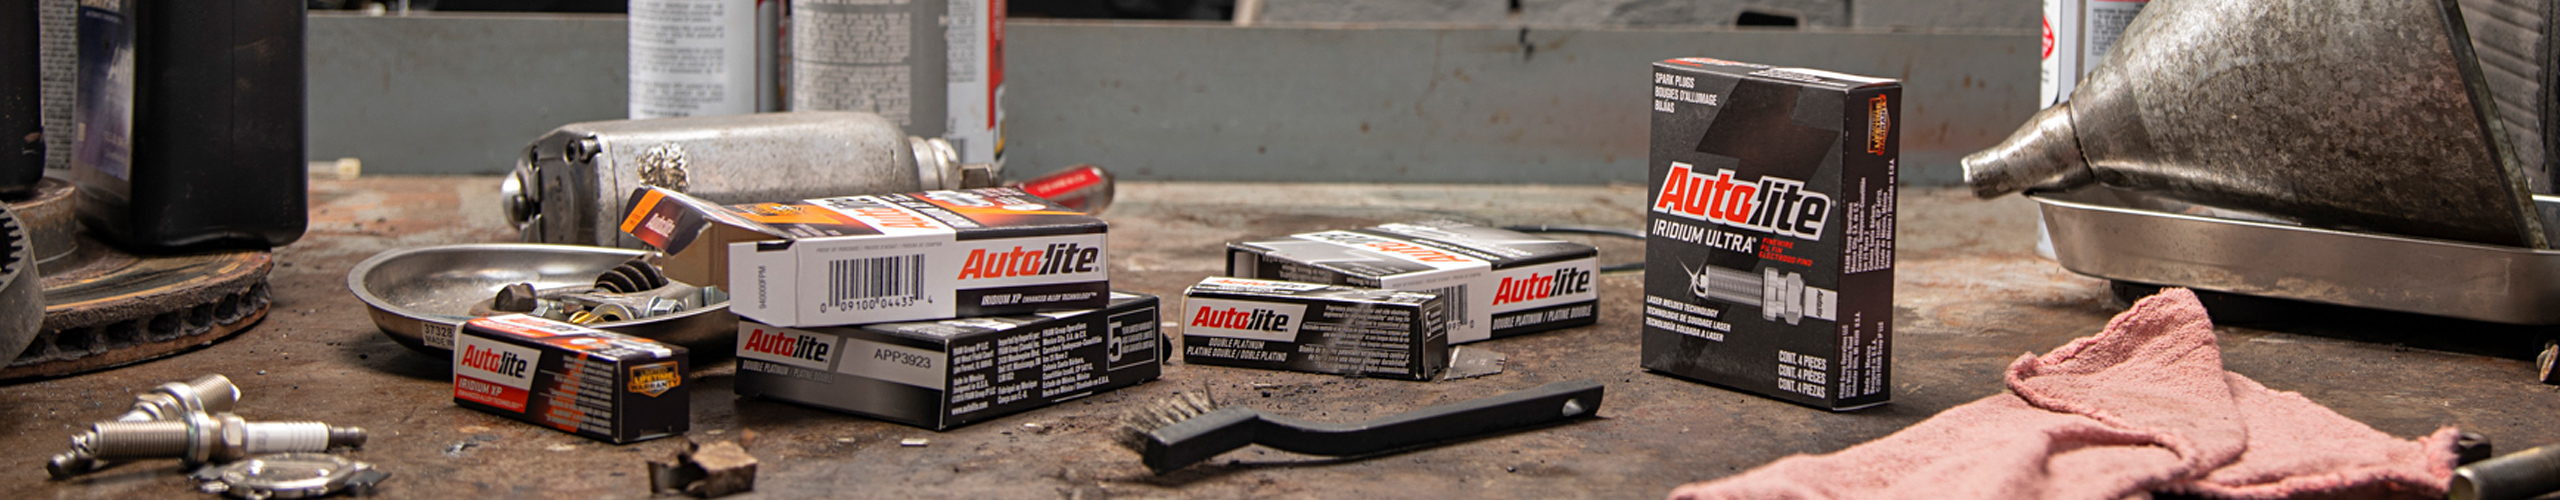 Workbench with Autolite packaging displayed